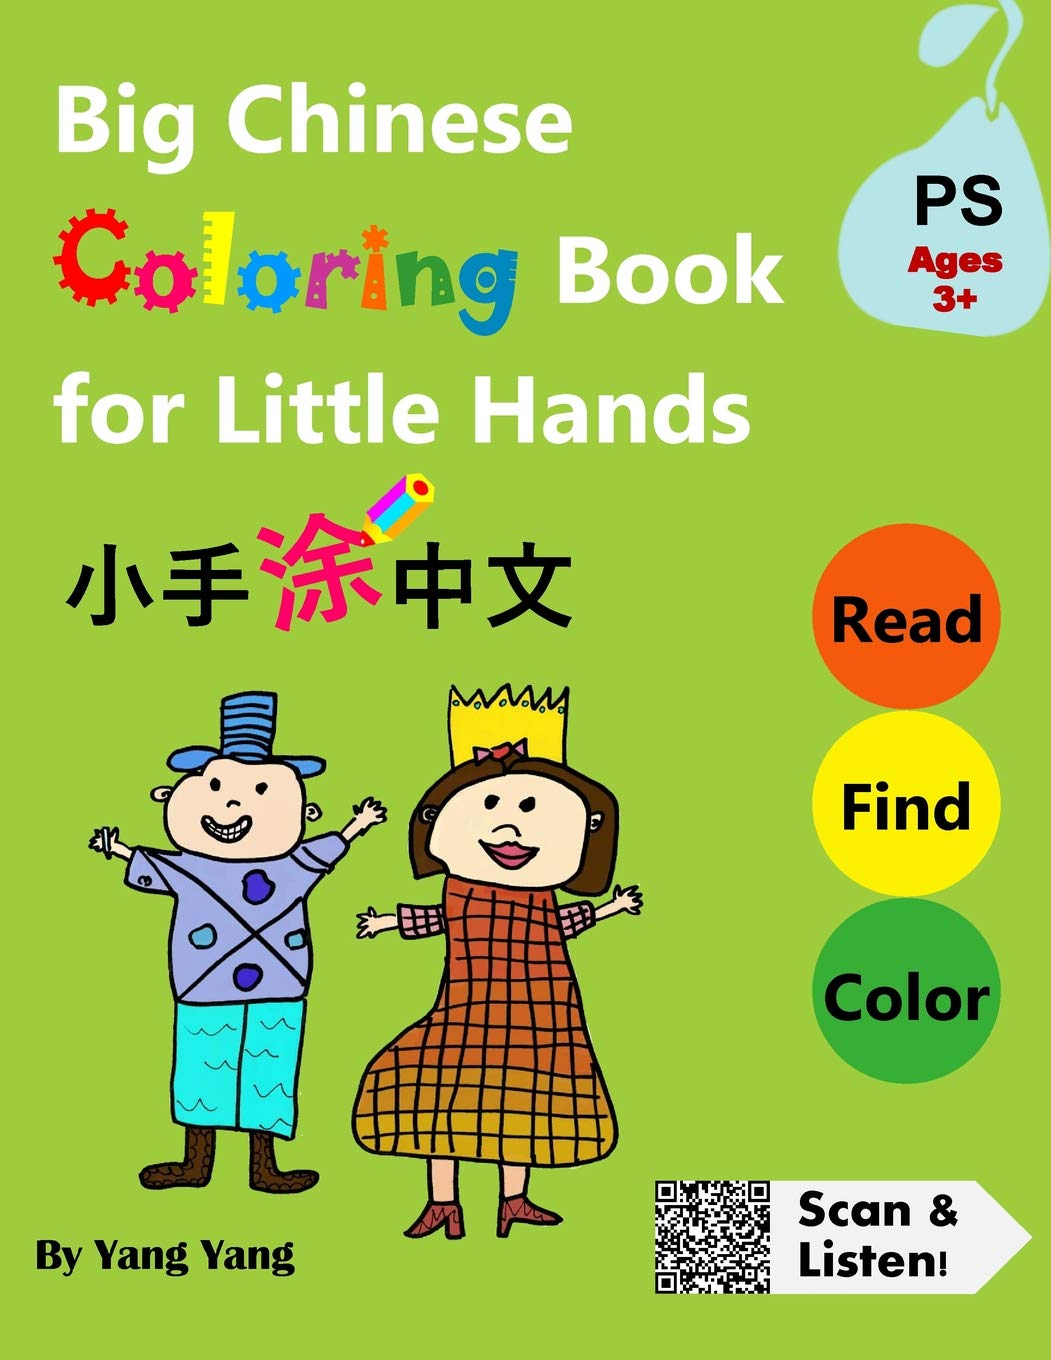 Big Chinese Coloring Book For Little Hands 108 Pages Of Fun Activities For Kids 3 Yang Yang Chen Qin Wang Claire Chen Yi 9781986907538 Amazon Com Books